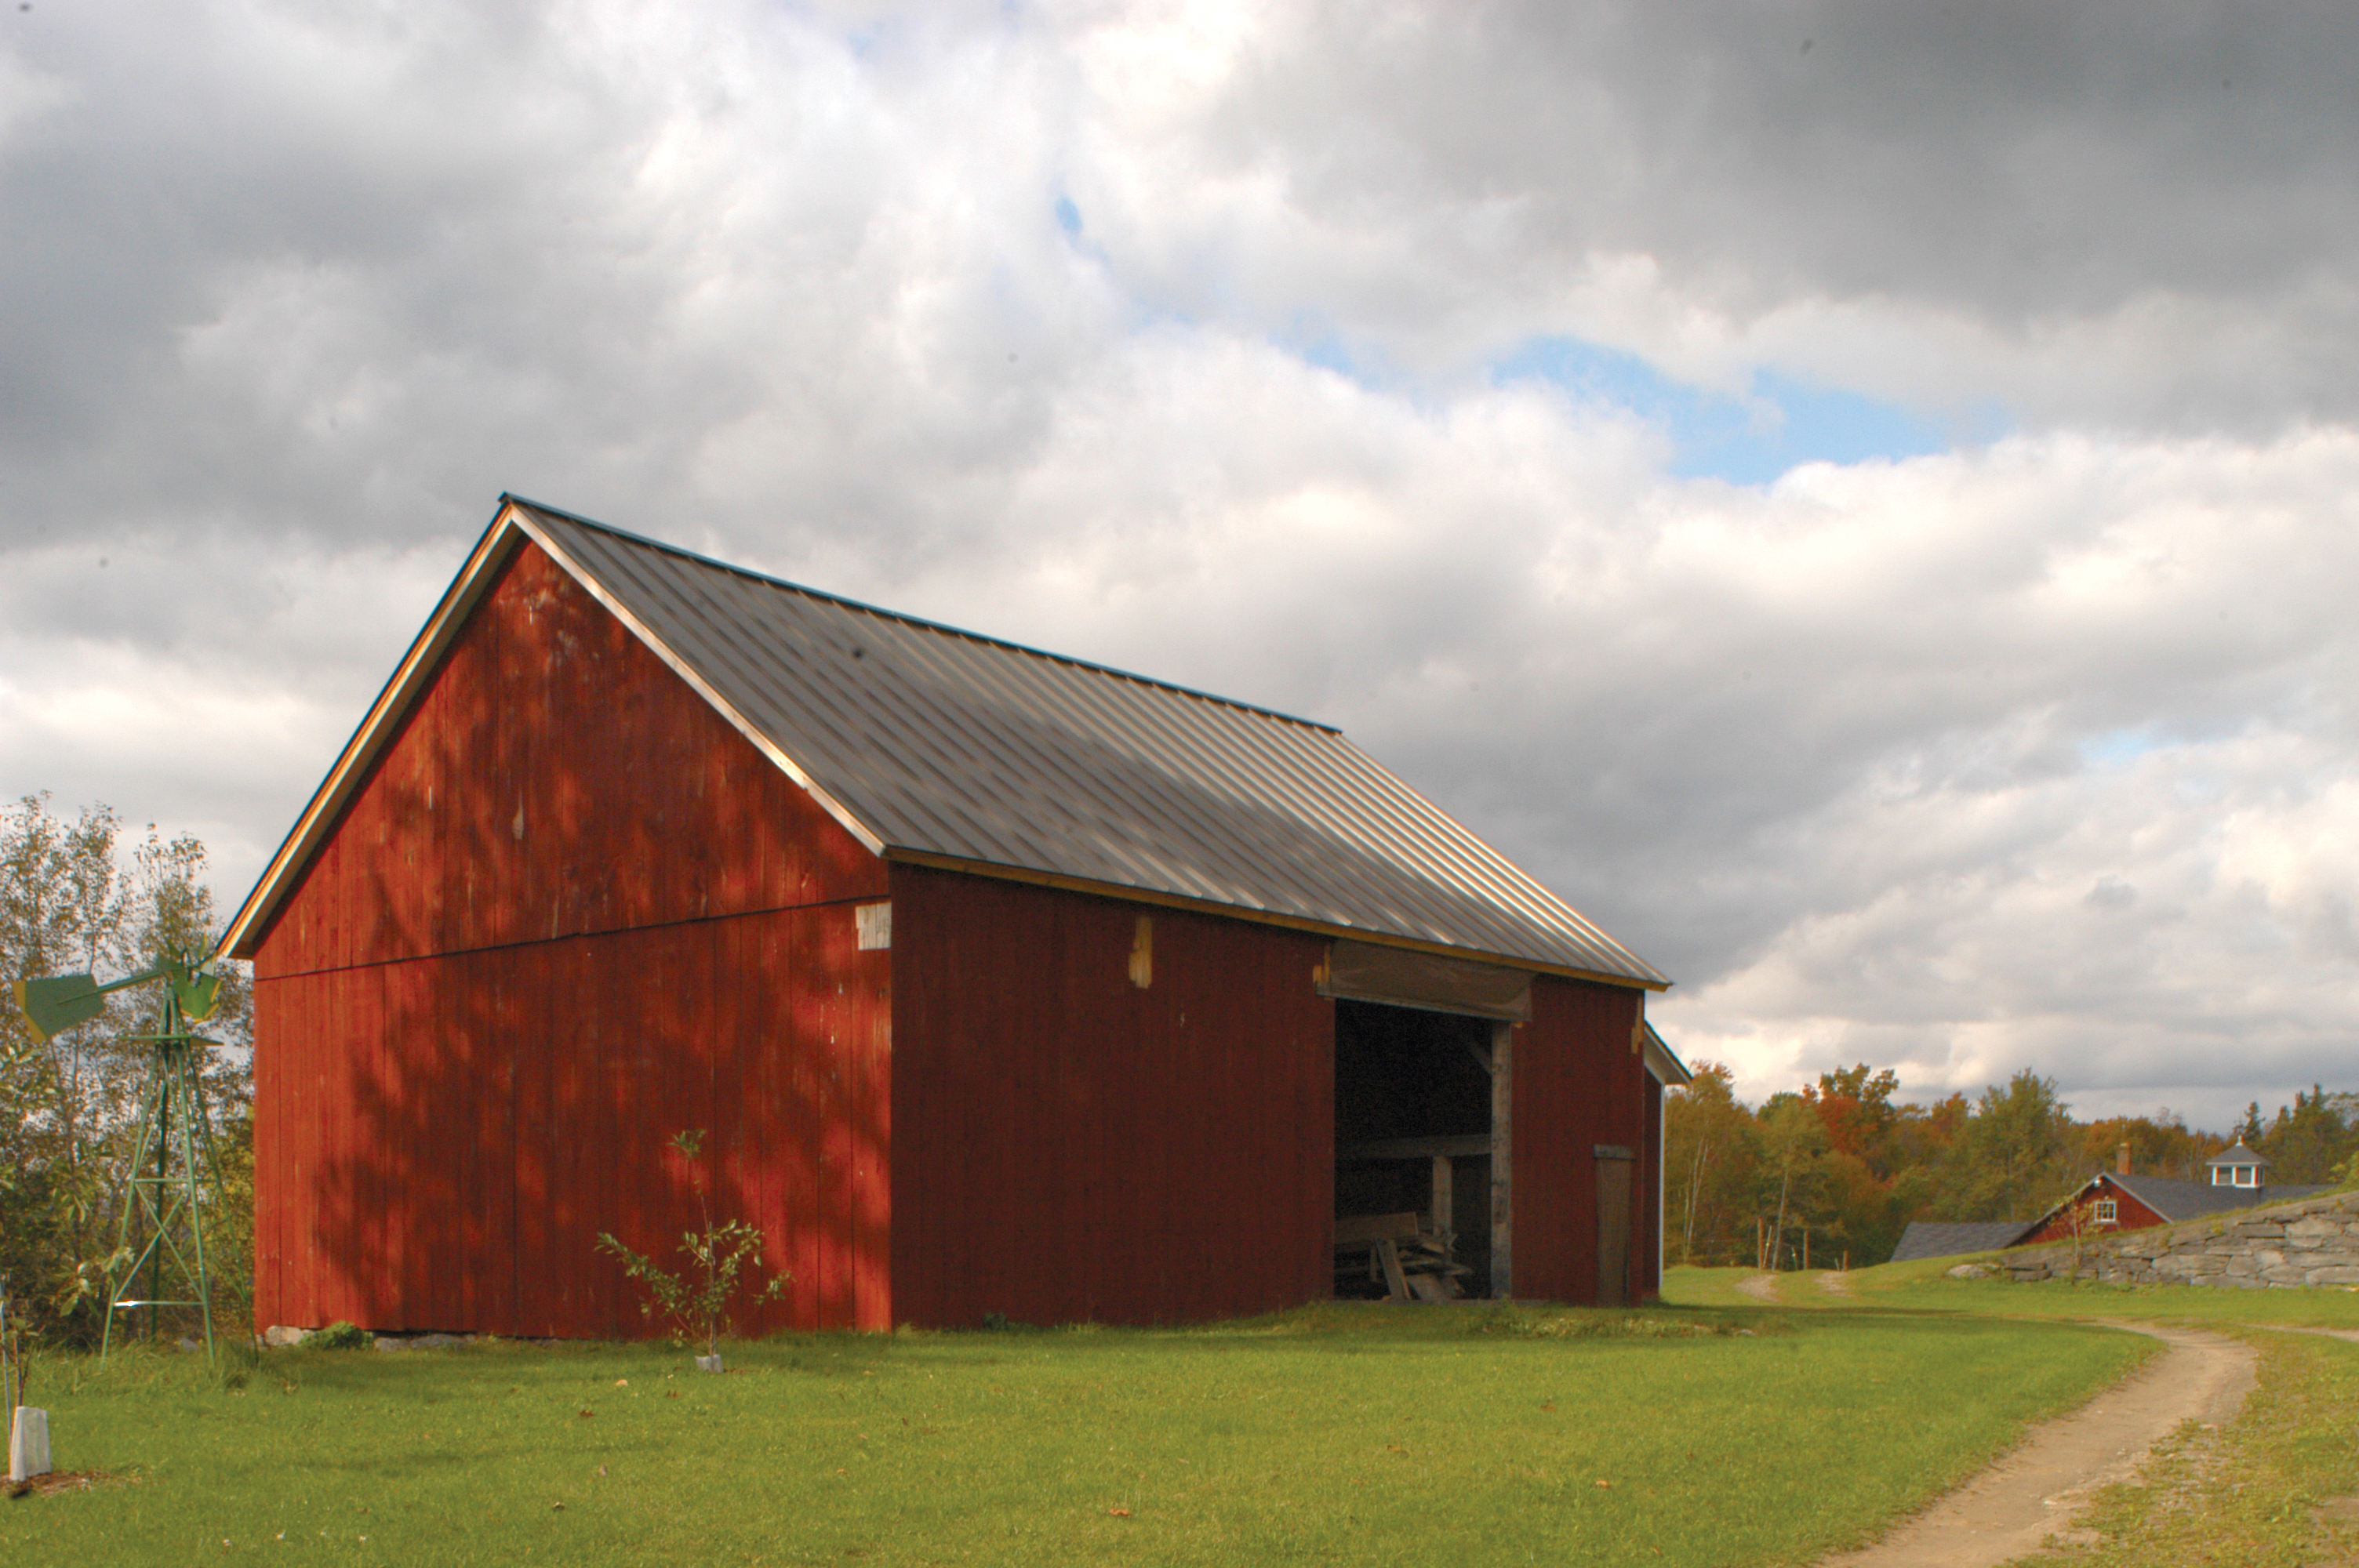 East Burke Fairbanks Museum Barn